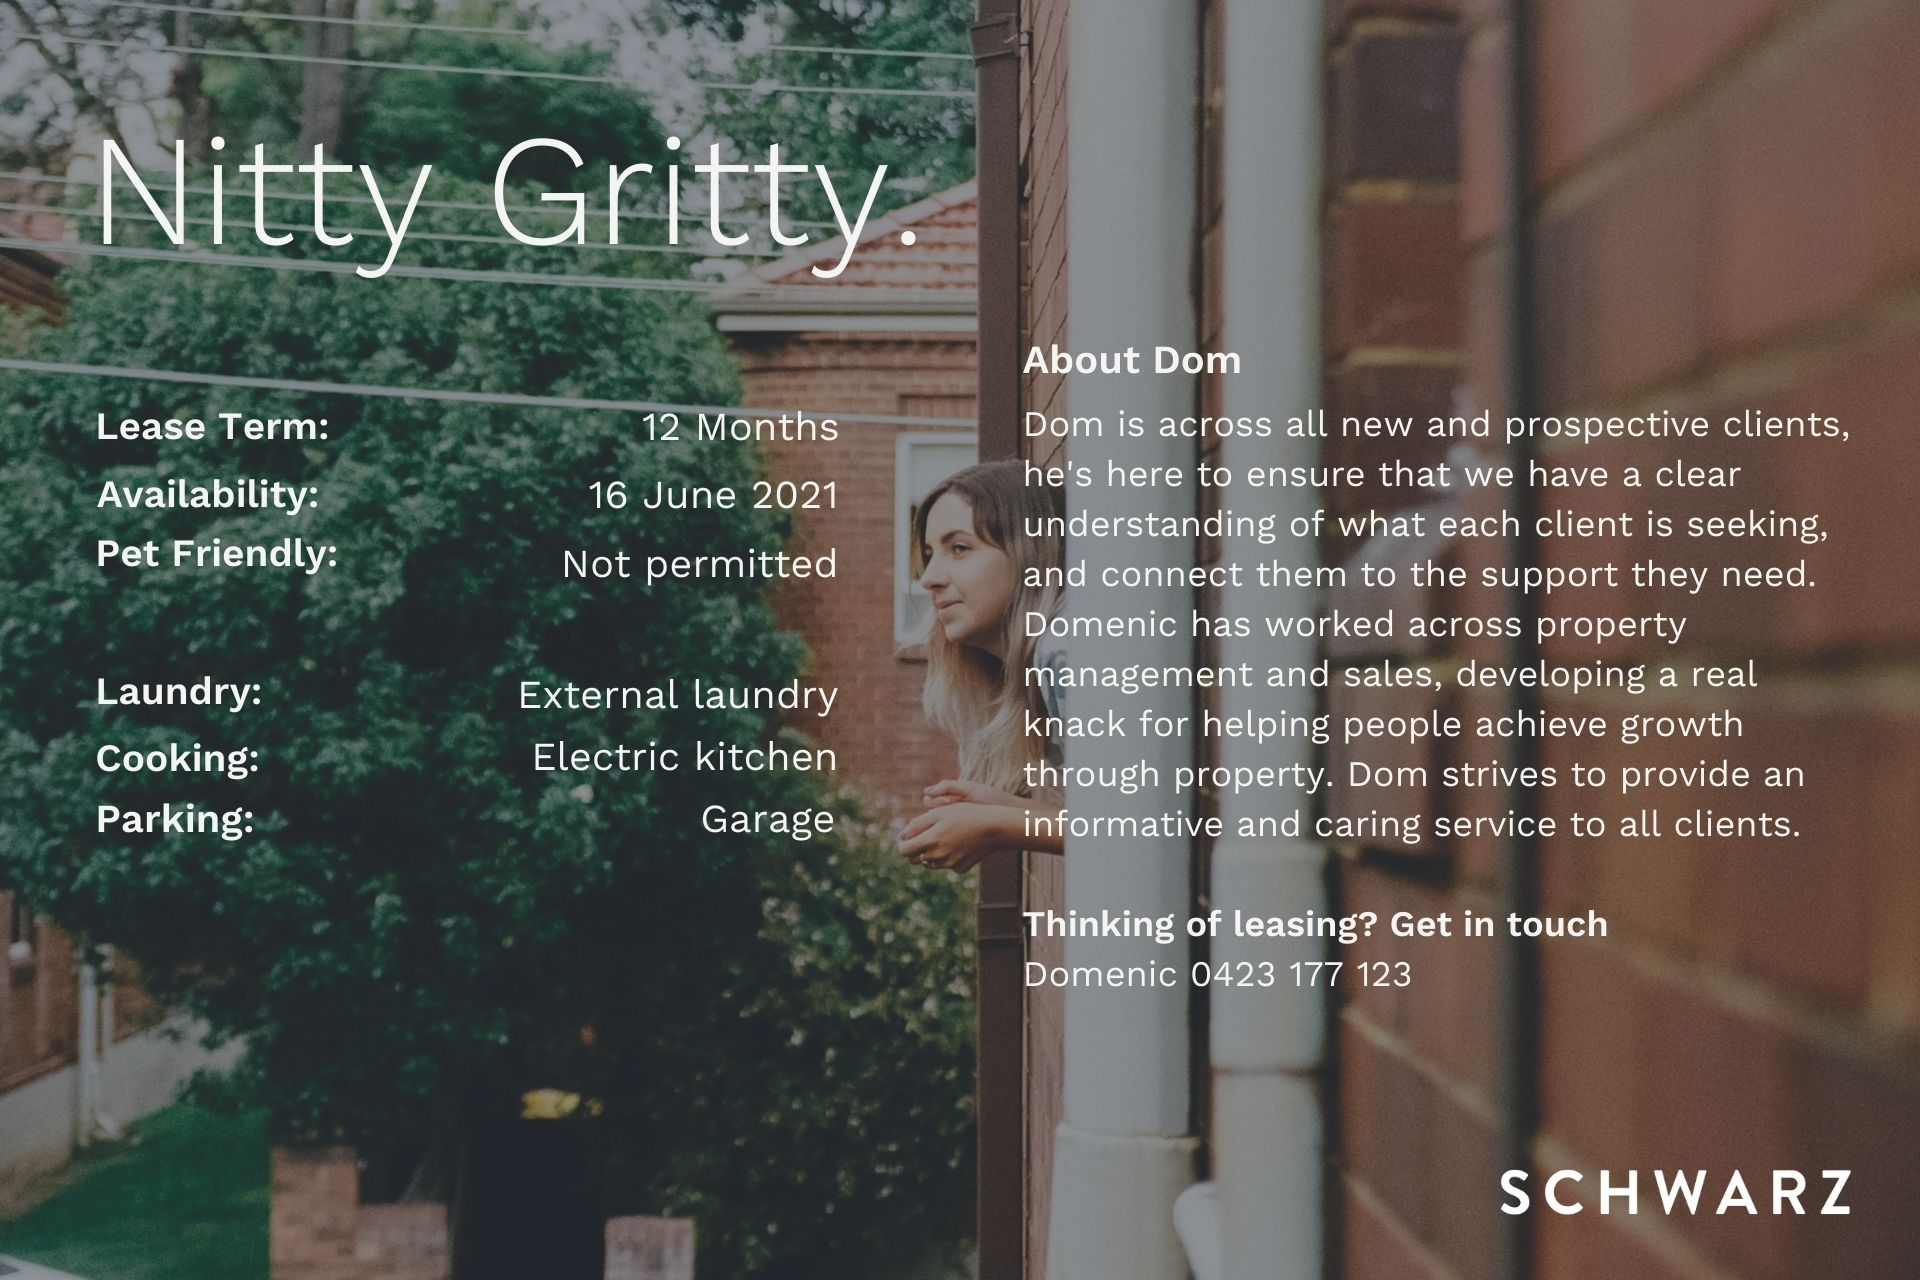 Nitty Gritty Property Management (1)